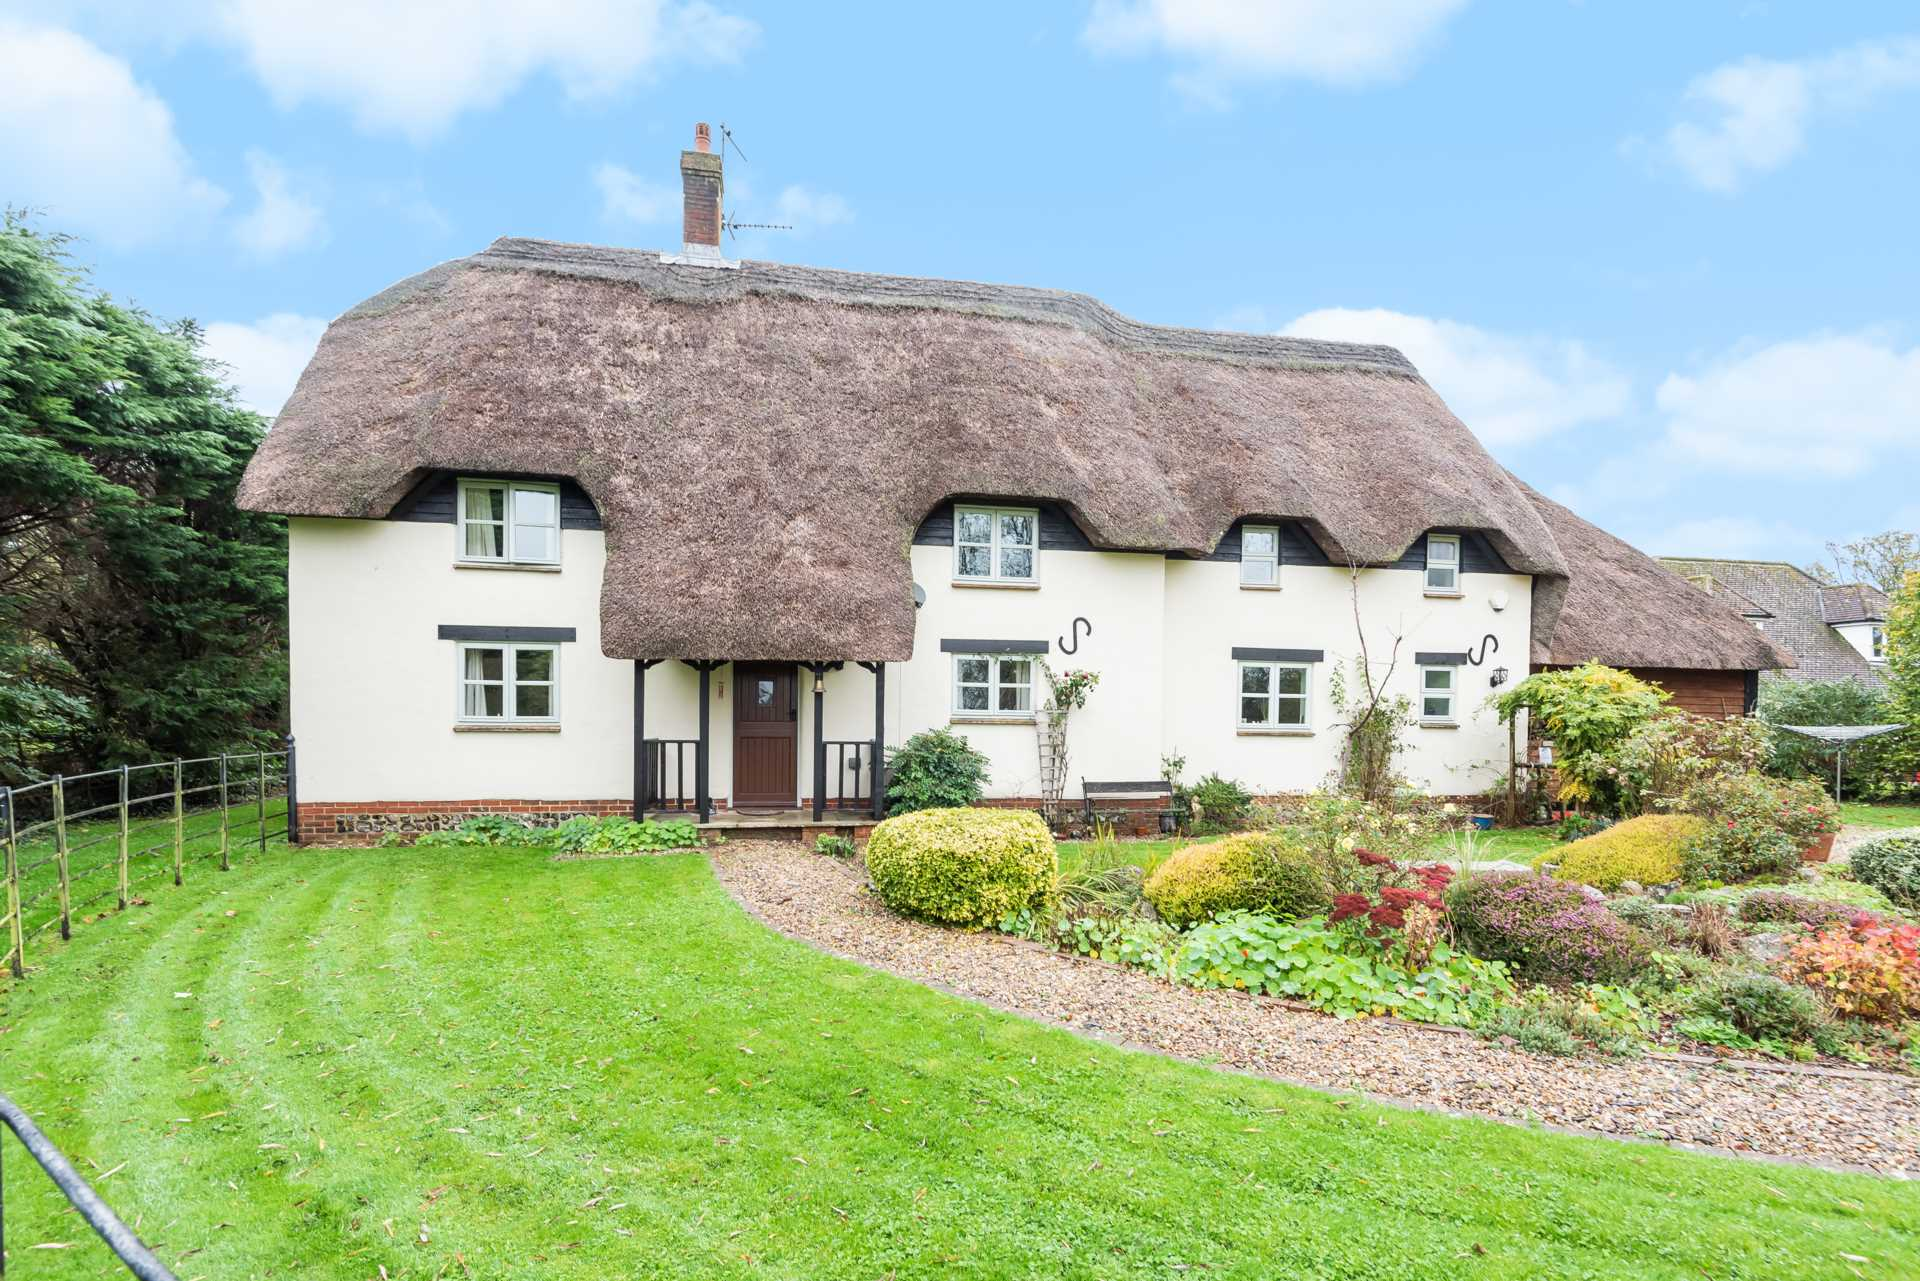 4 bed detached house for sale in Wagtails, Whatcombe Lane, Winterborne Whitechurch, Blandford Forum 0